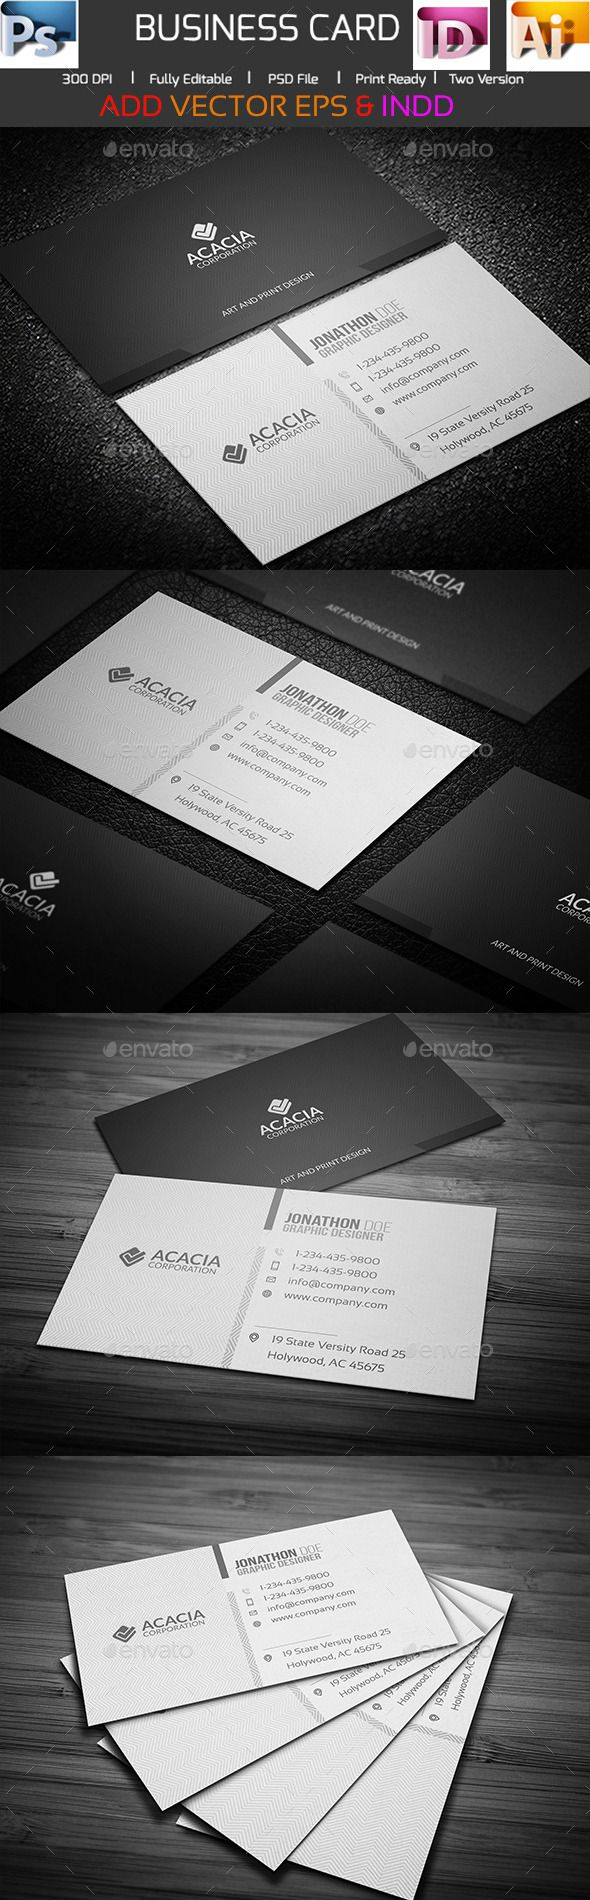 24 best Business Cards images on Pinterest | Business card design ...